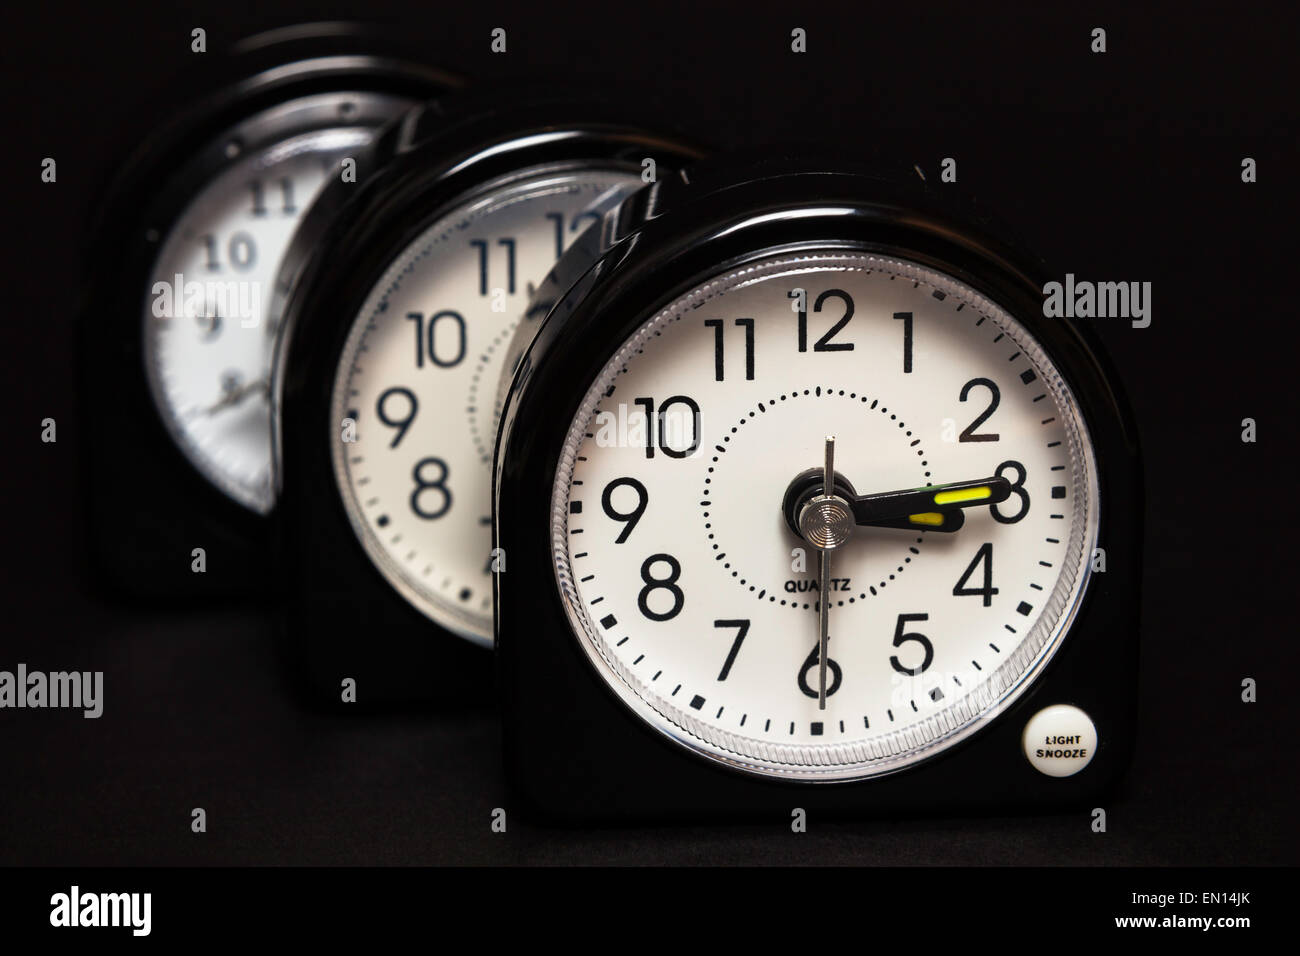 Three alarm clocks one behind the other - Stock Image